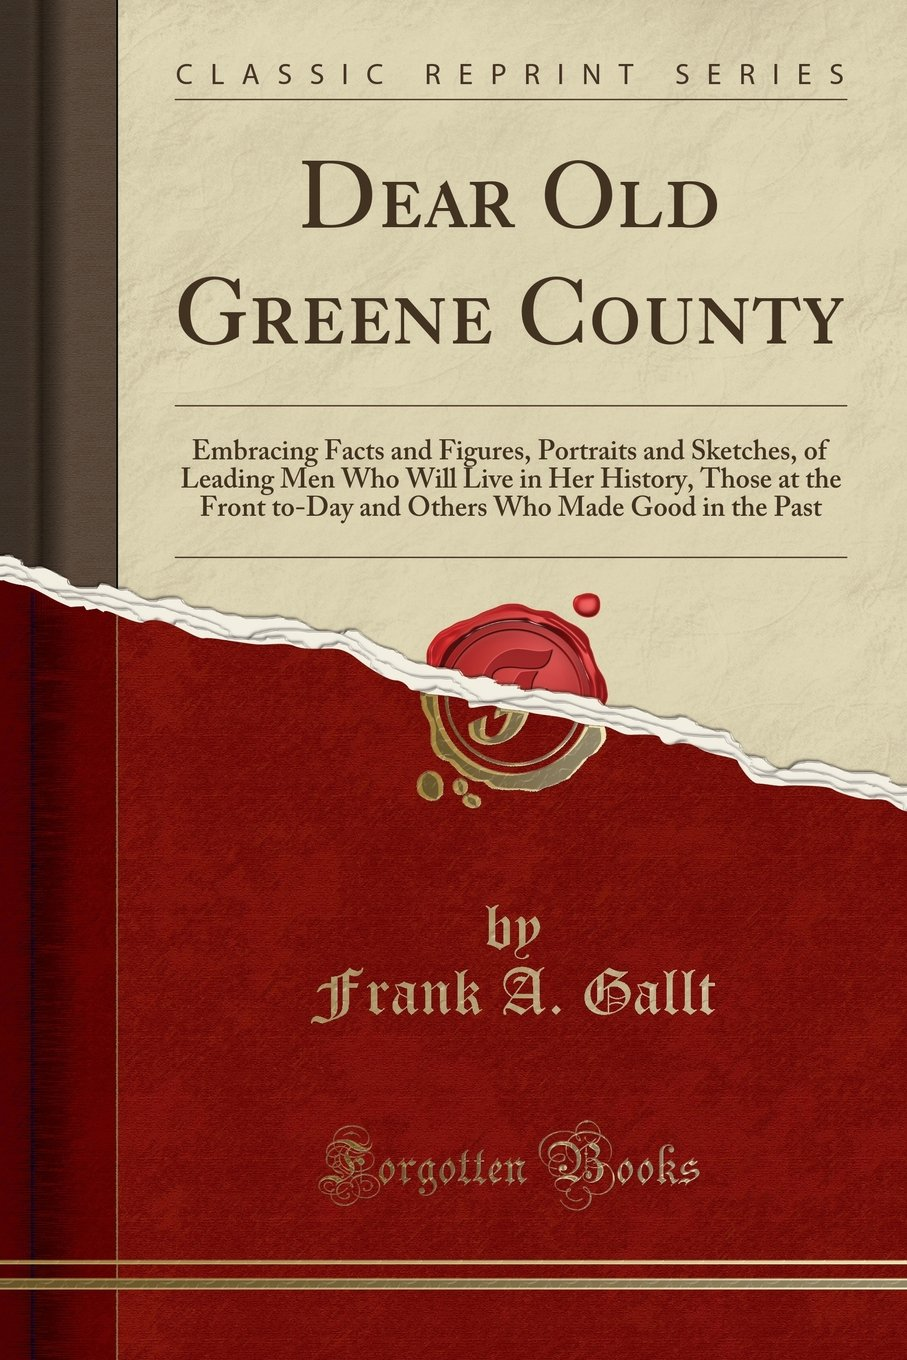 Dear Old Greene County: Embracing Facts and Figures, Portraits and Sketches, of Leading Men Who Will Live in Her History, Those at the Front to-Day ... Who Made Good in the Past (Classic Reprint) ebook